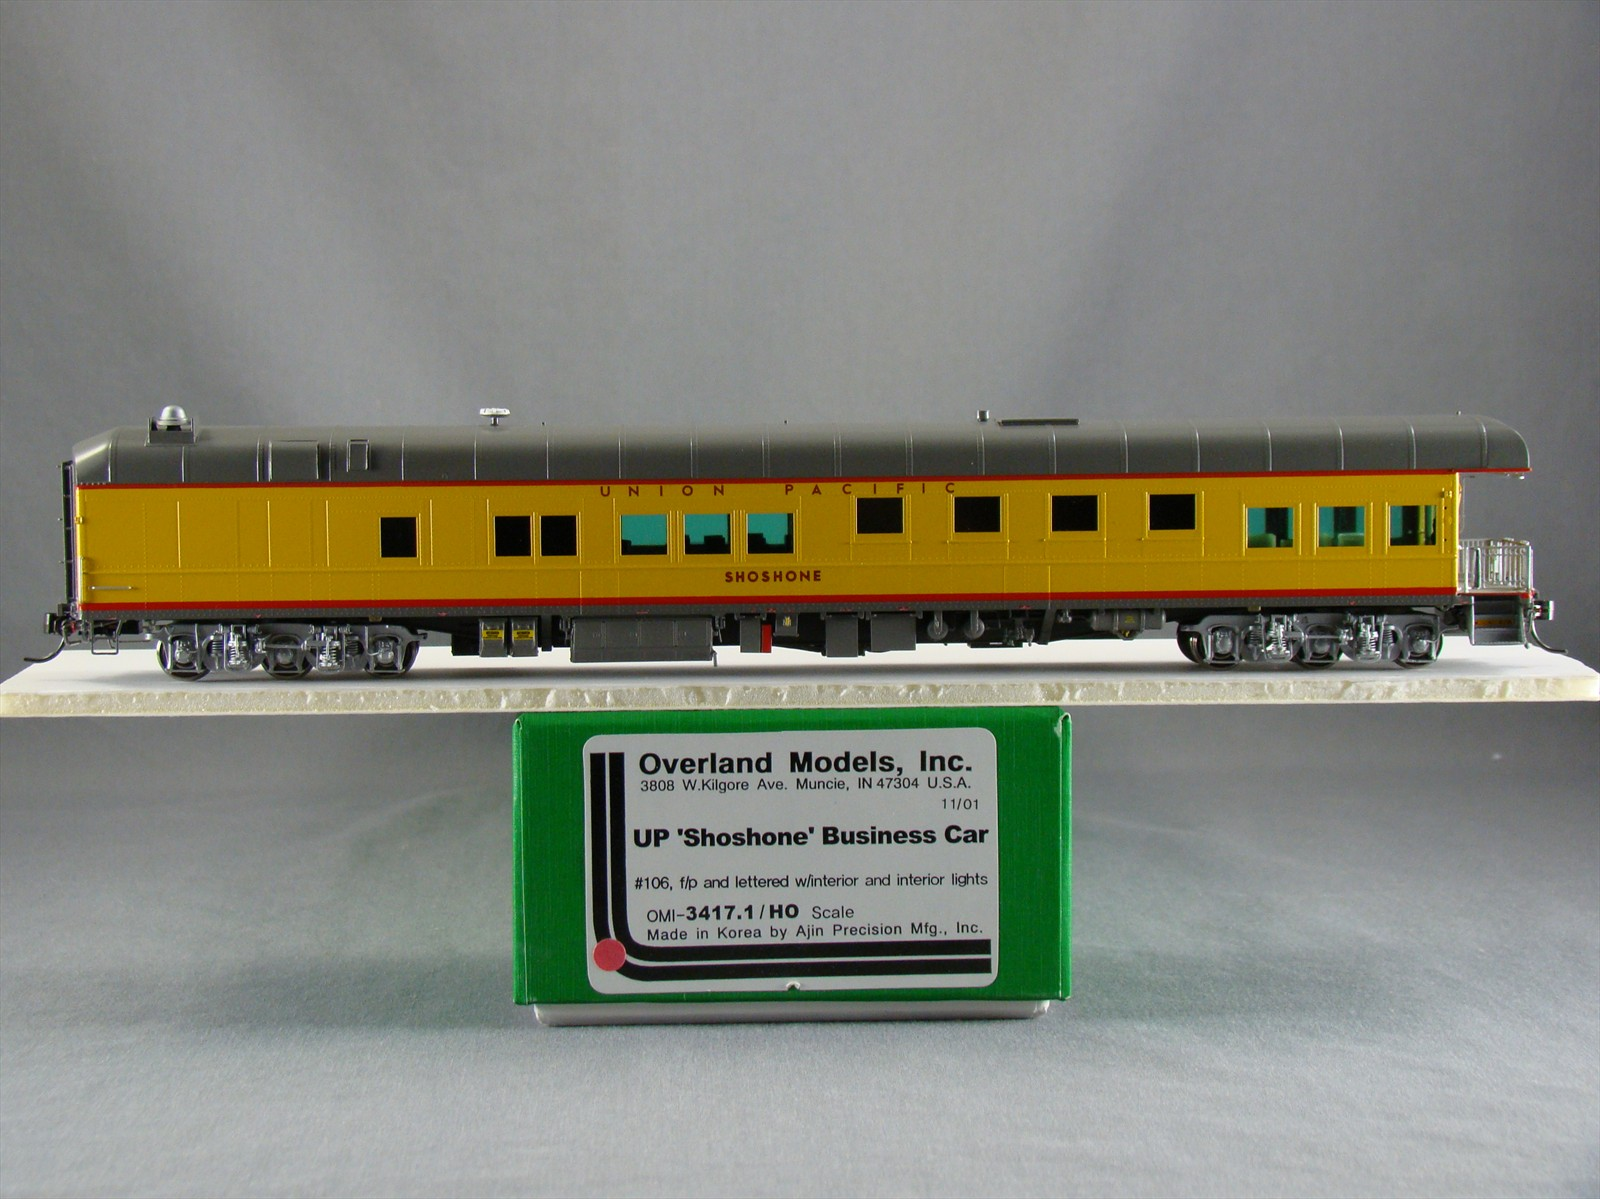 Overland 3417.1 - UP Modern Executive Business Car 'Shoshone',10